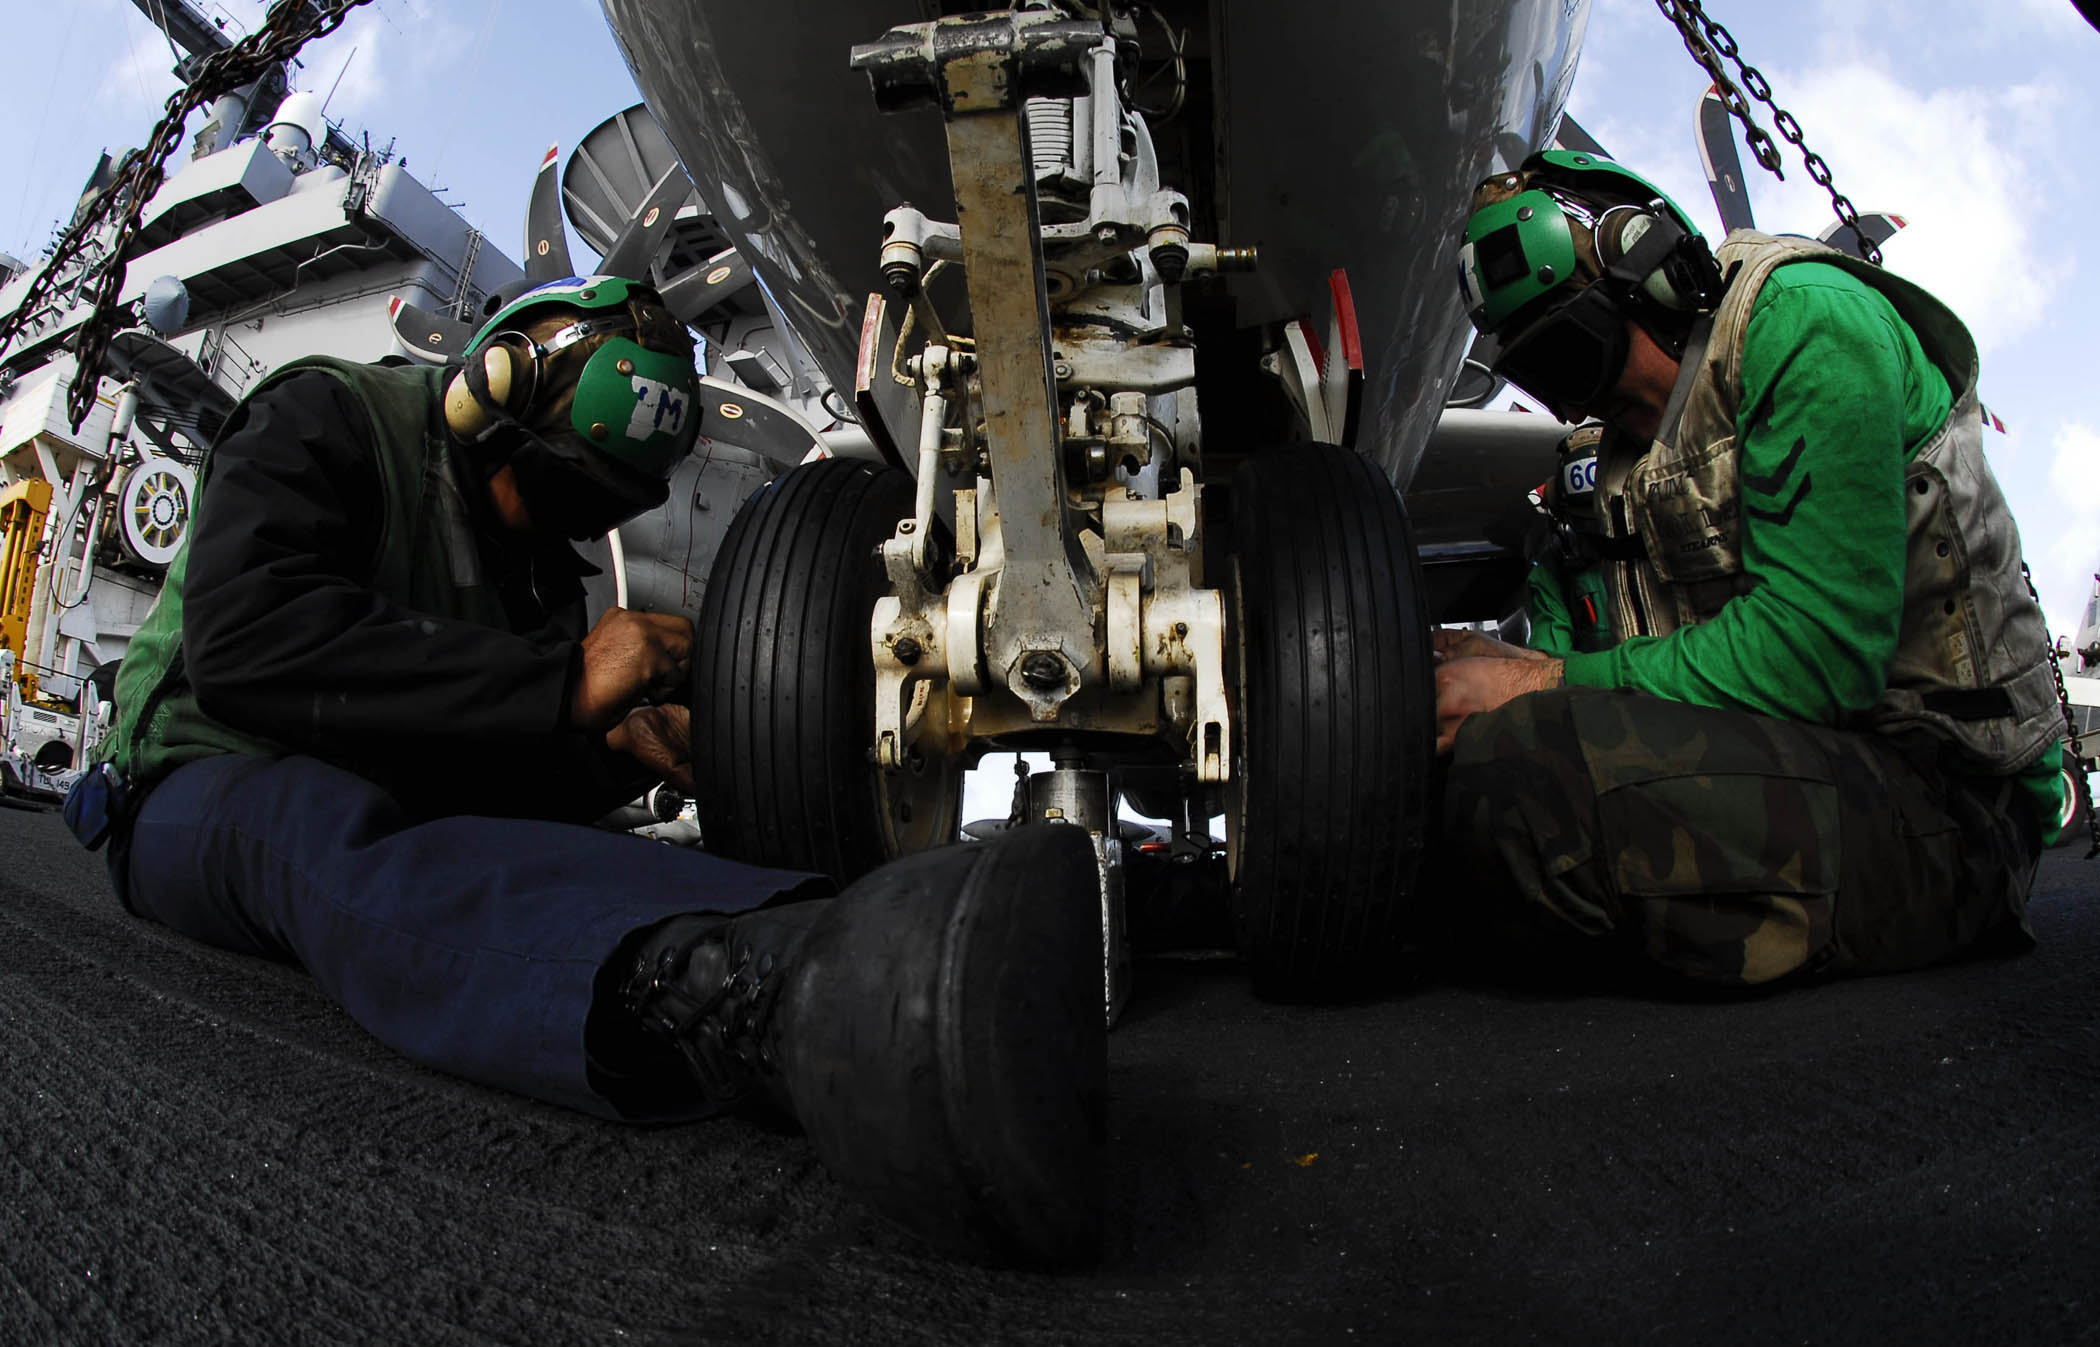 File:US Navy 081109-N-9928E-062 Aviation Structural Mechanic 3rd ...